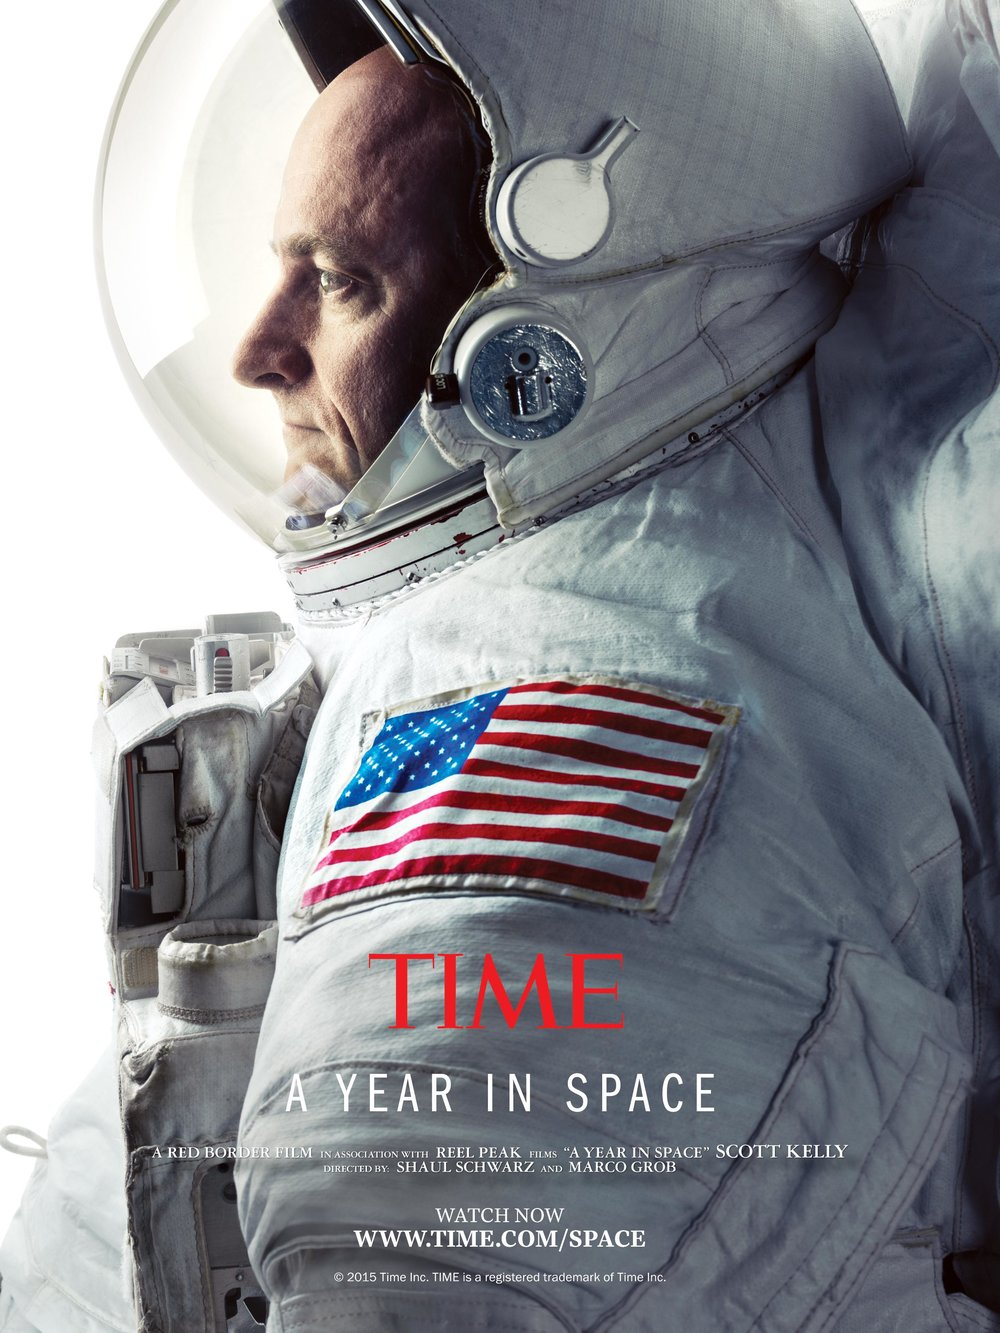 01 - time-year-in-space.jpg